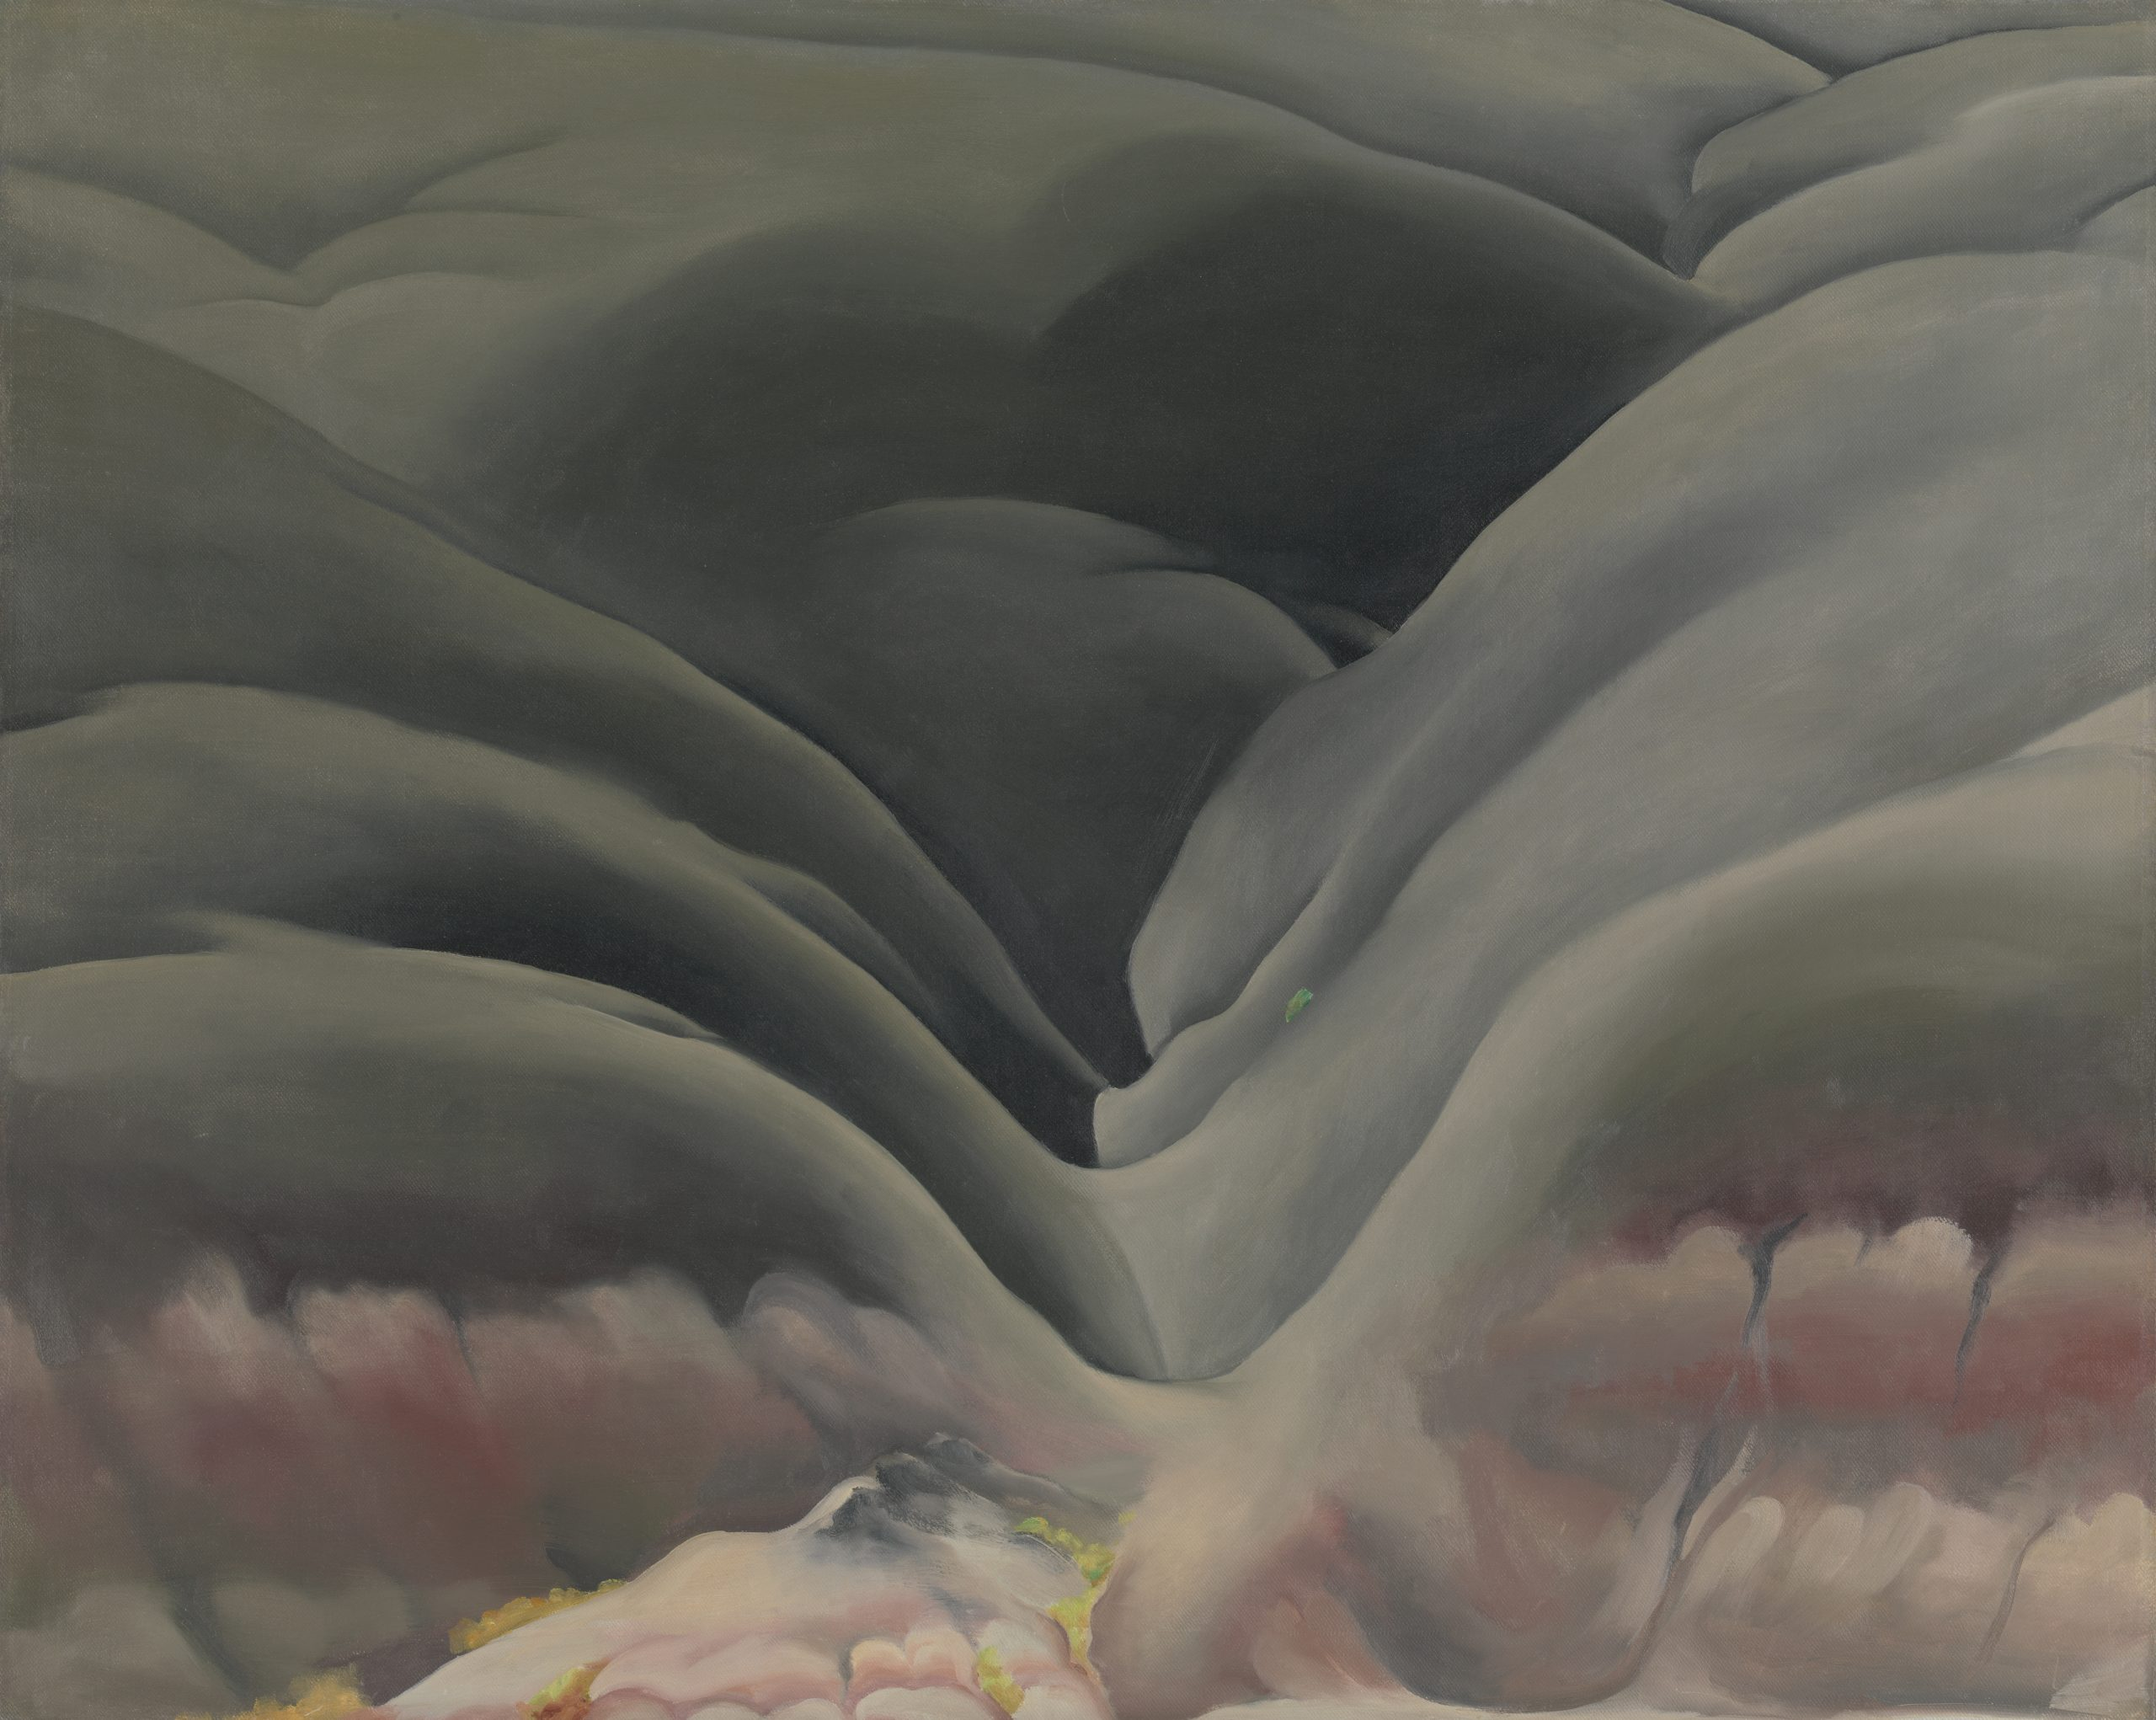 Large mounds of green-black and pink mountains form a valley at the center of the painting.